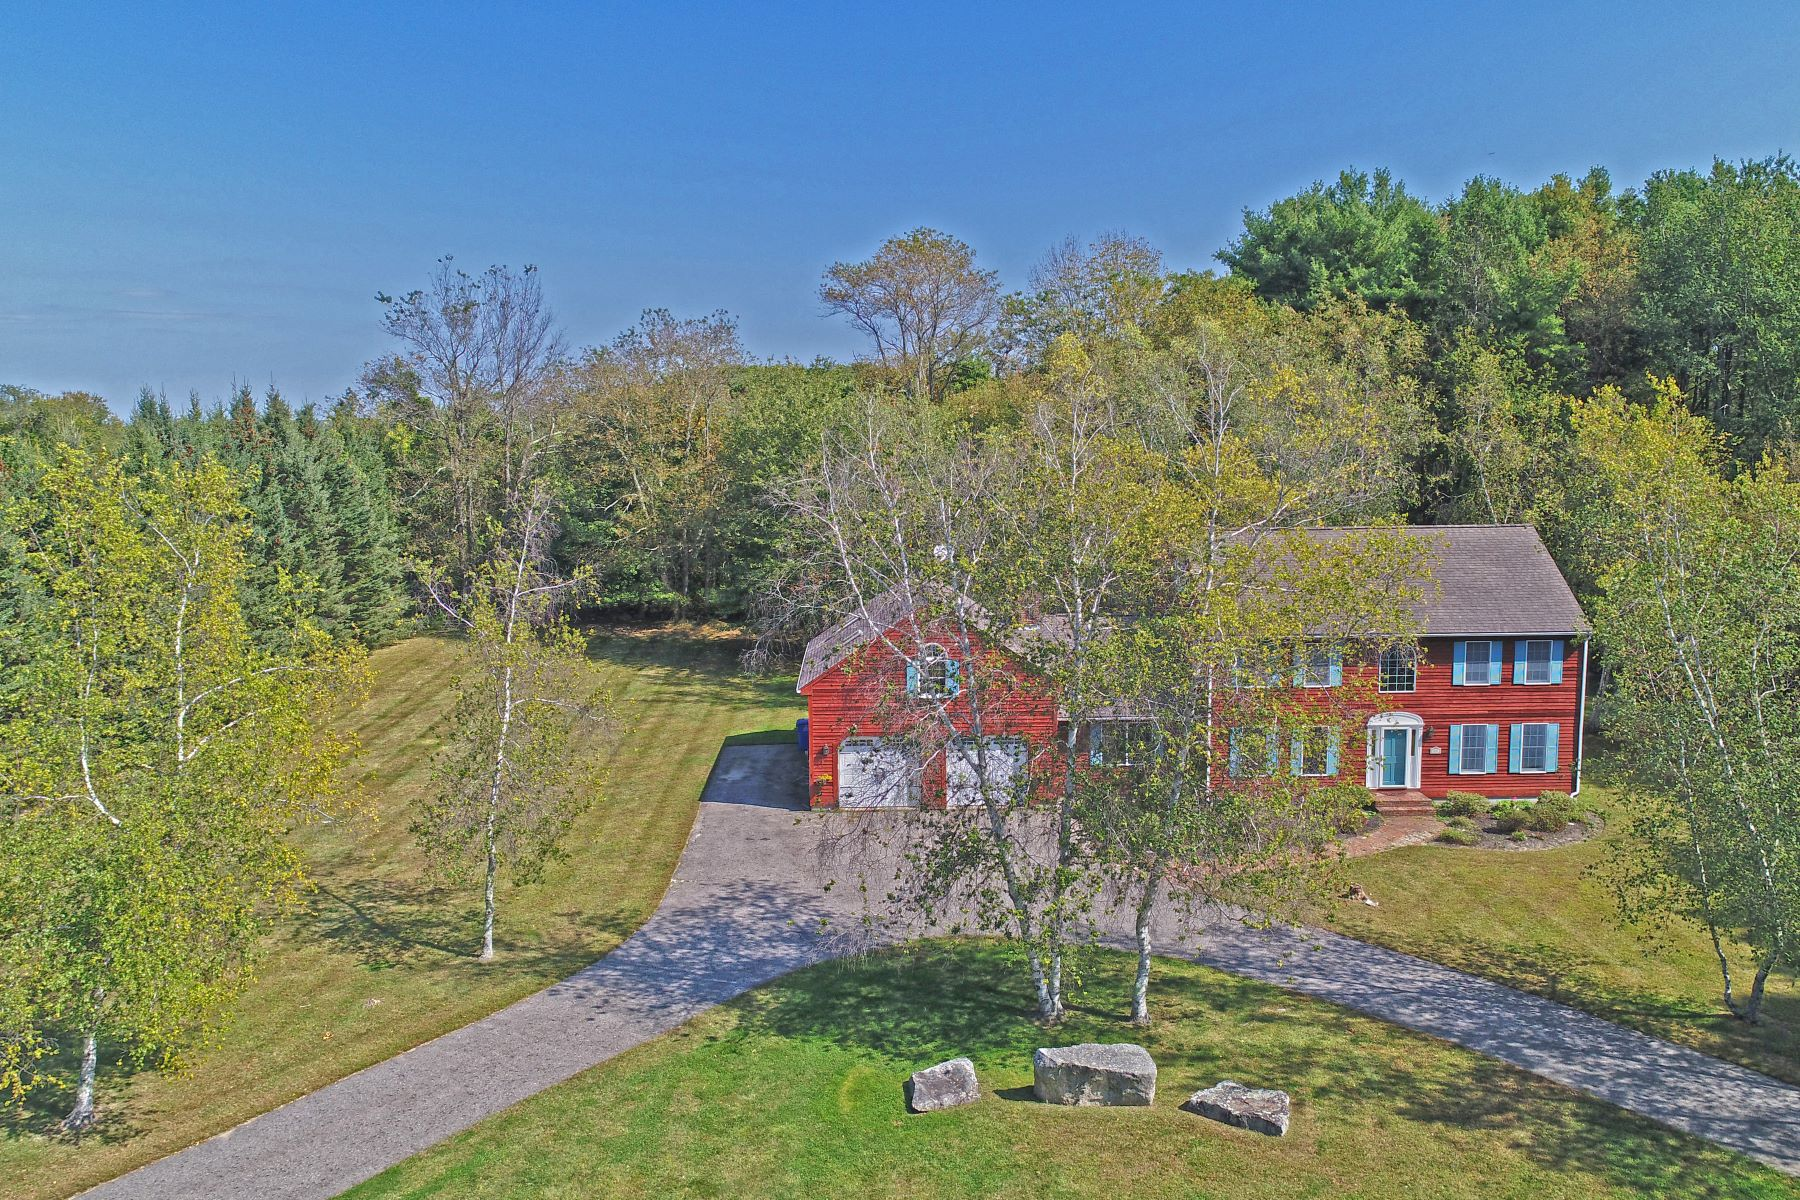 Single Family Home for Sale at Great For Entertaining 11 Spruce Lane, Montville, Connecticut, 06370 United States